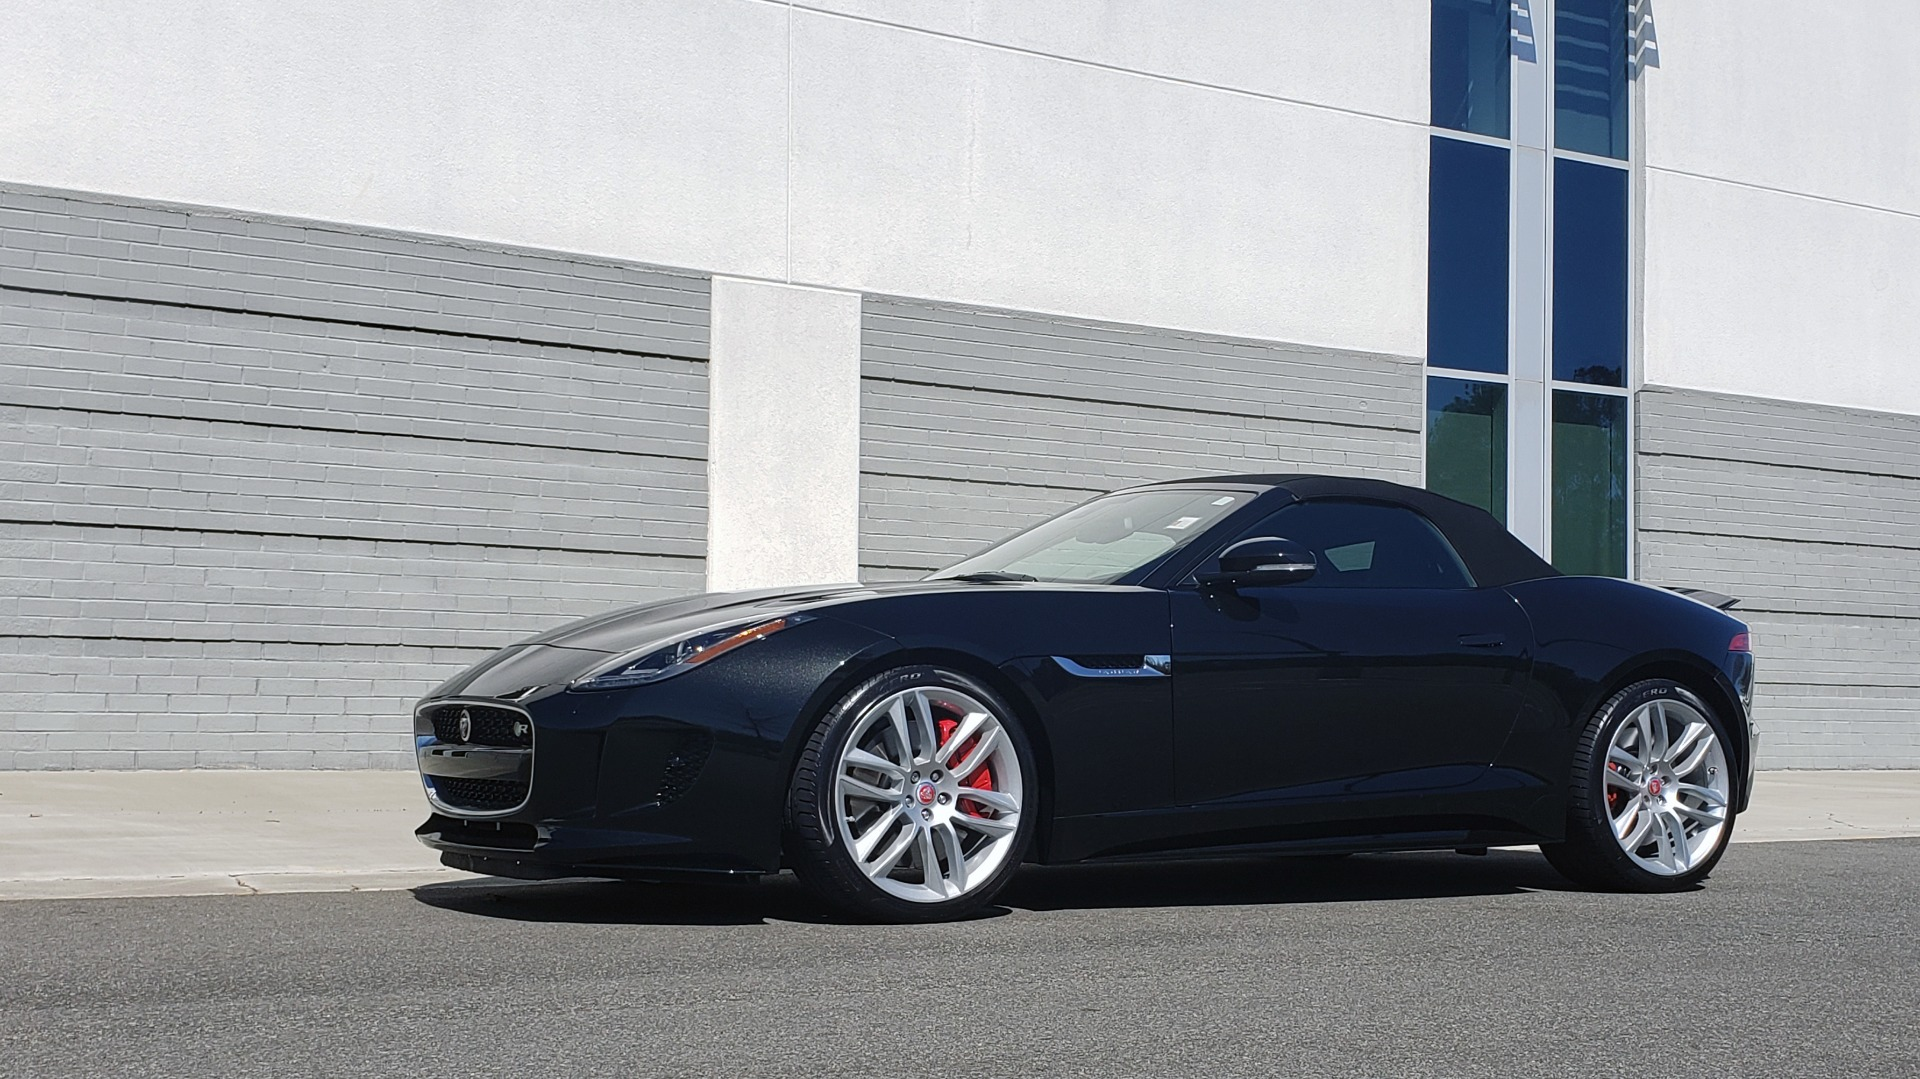 Used 2016 Jaguar F-TYPE R CONVERTIBLE / SC 5.0L 550HP / VISION PACK 3 / BSM / REARVIEW for sale $63,000 at Formula Imports in Charlotte NC 28227 4